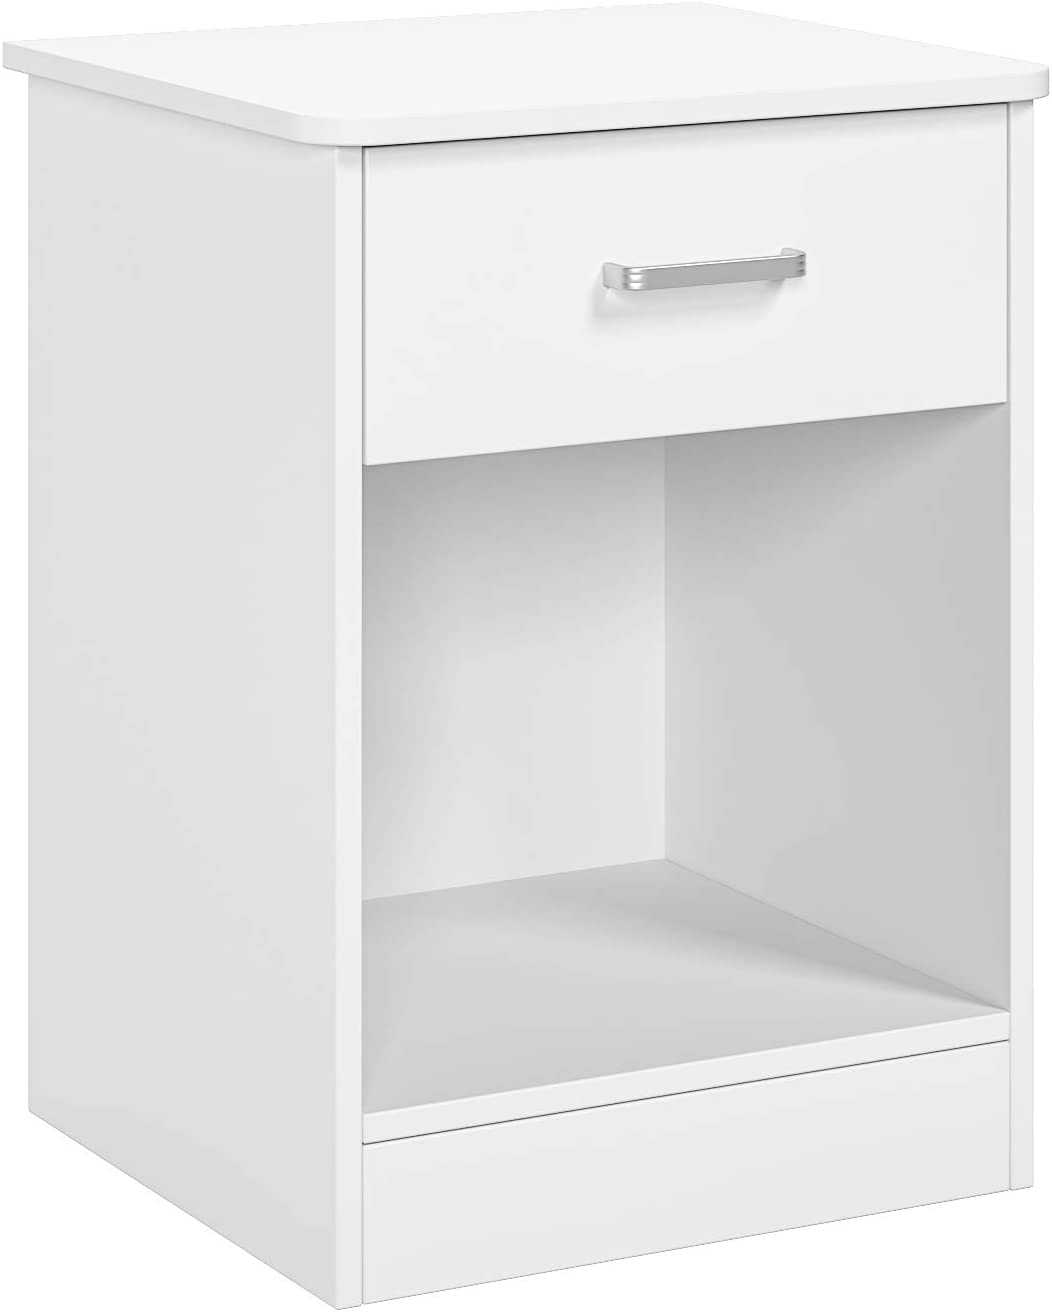 Nightstand with Drawer and Cabinet Table Side End 2-Tier 直営店 売買